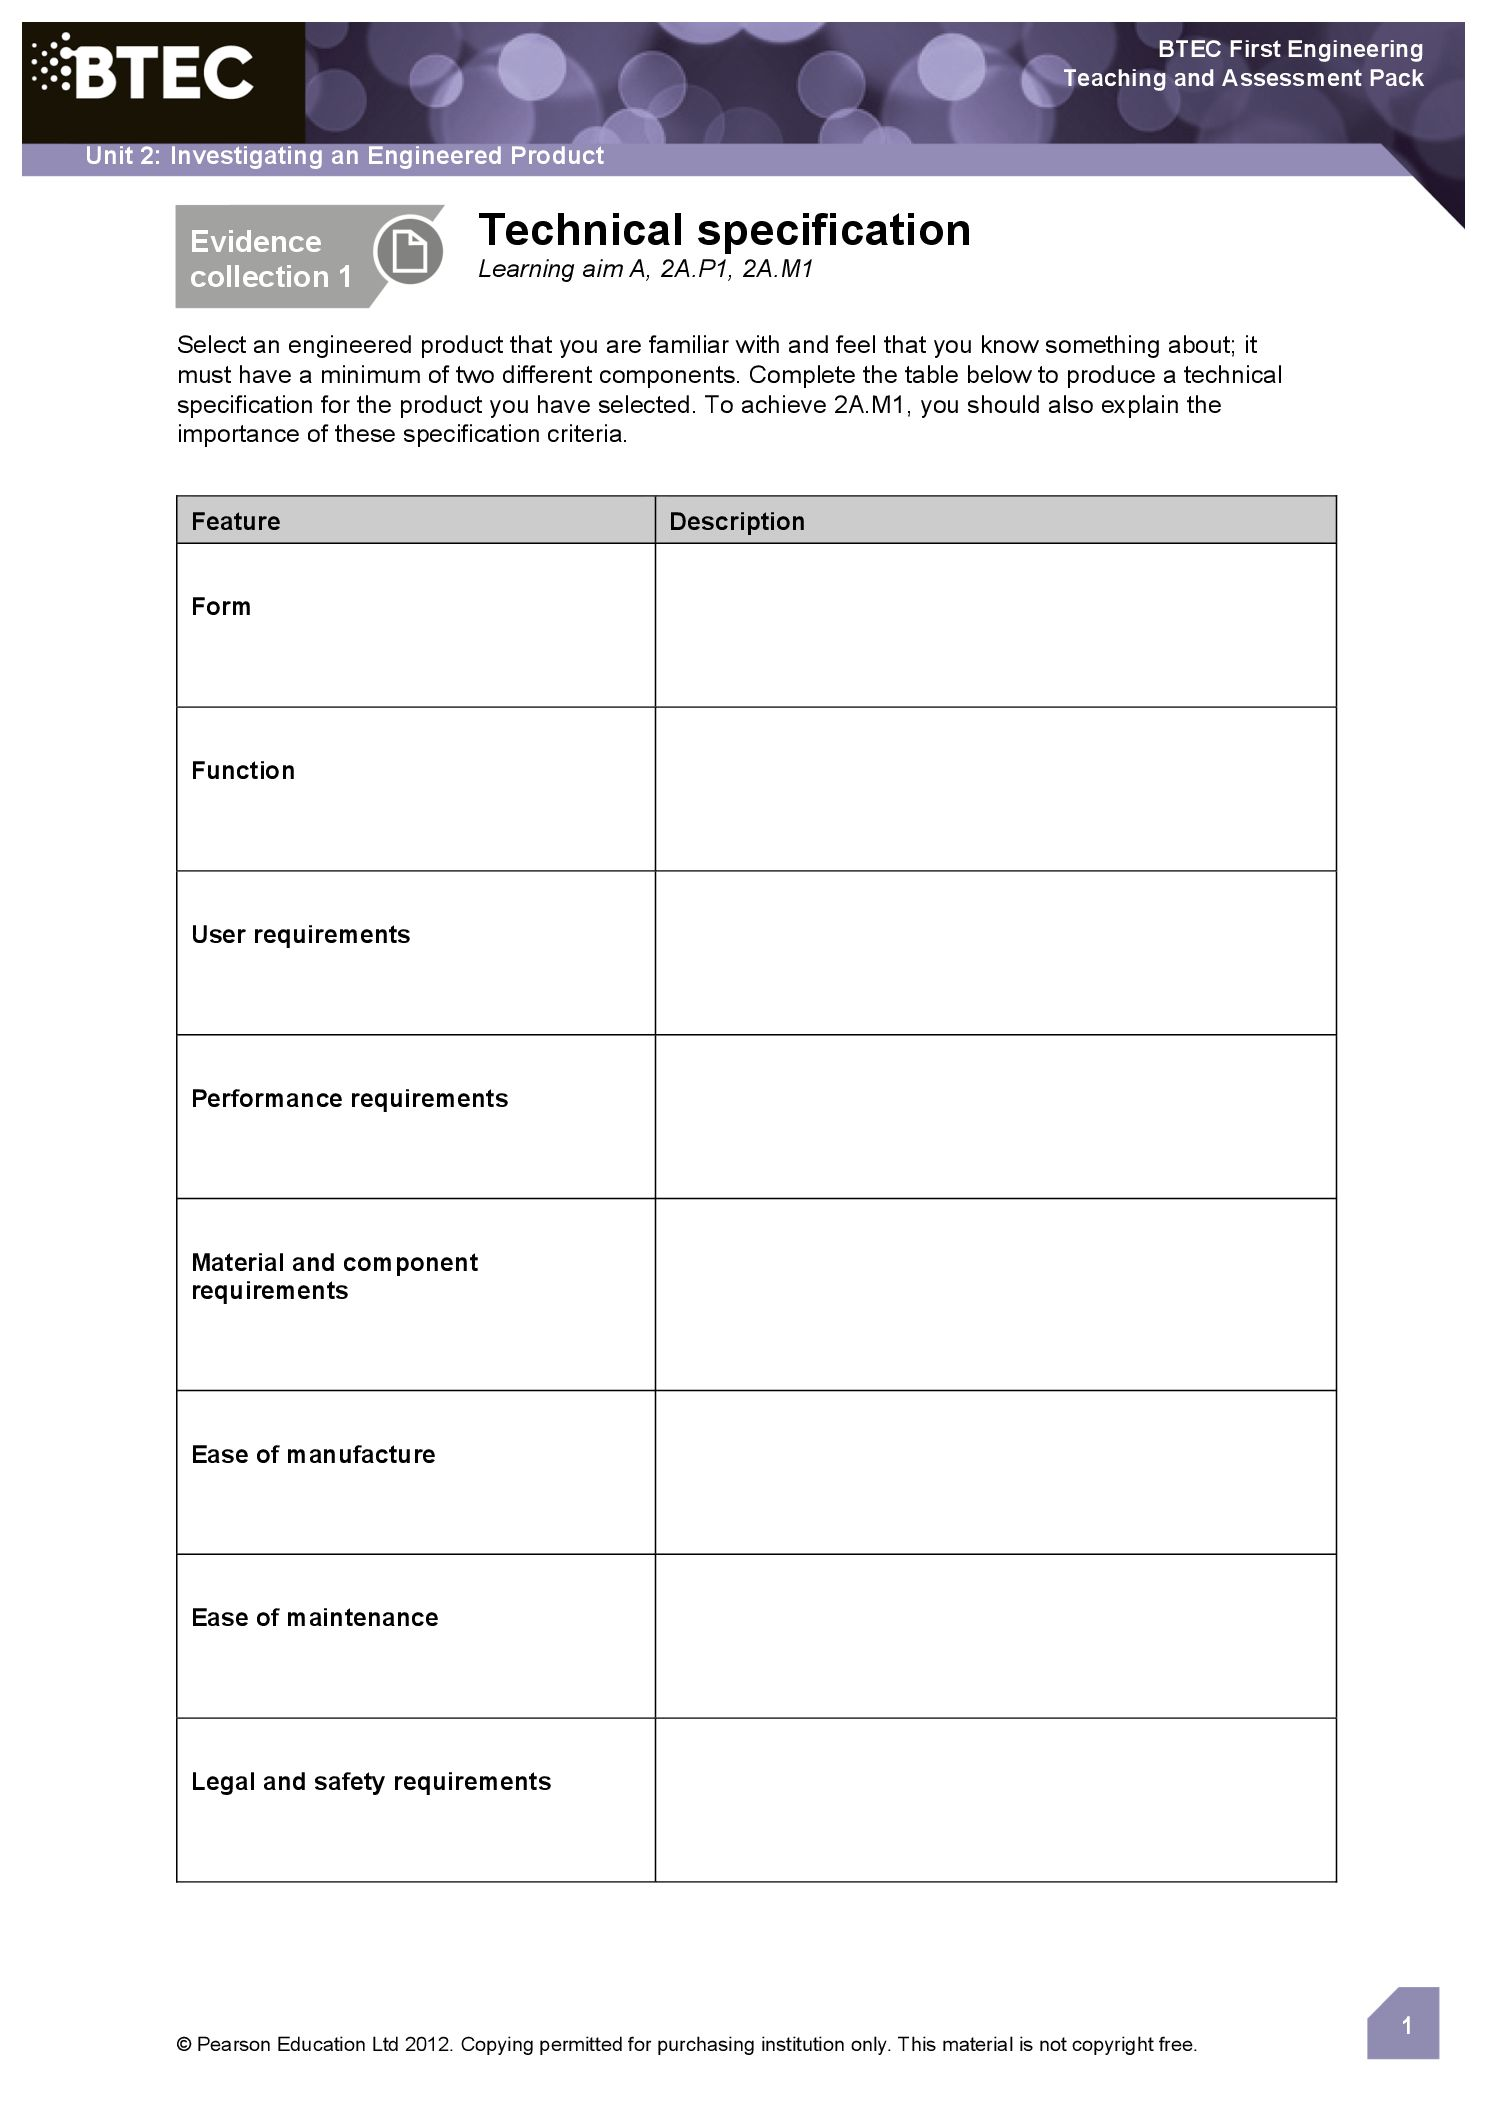 engineering ready made sheets to help capture learner evidence for assignments